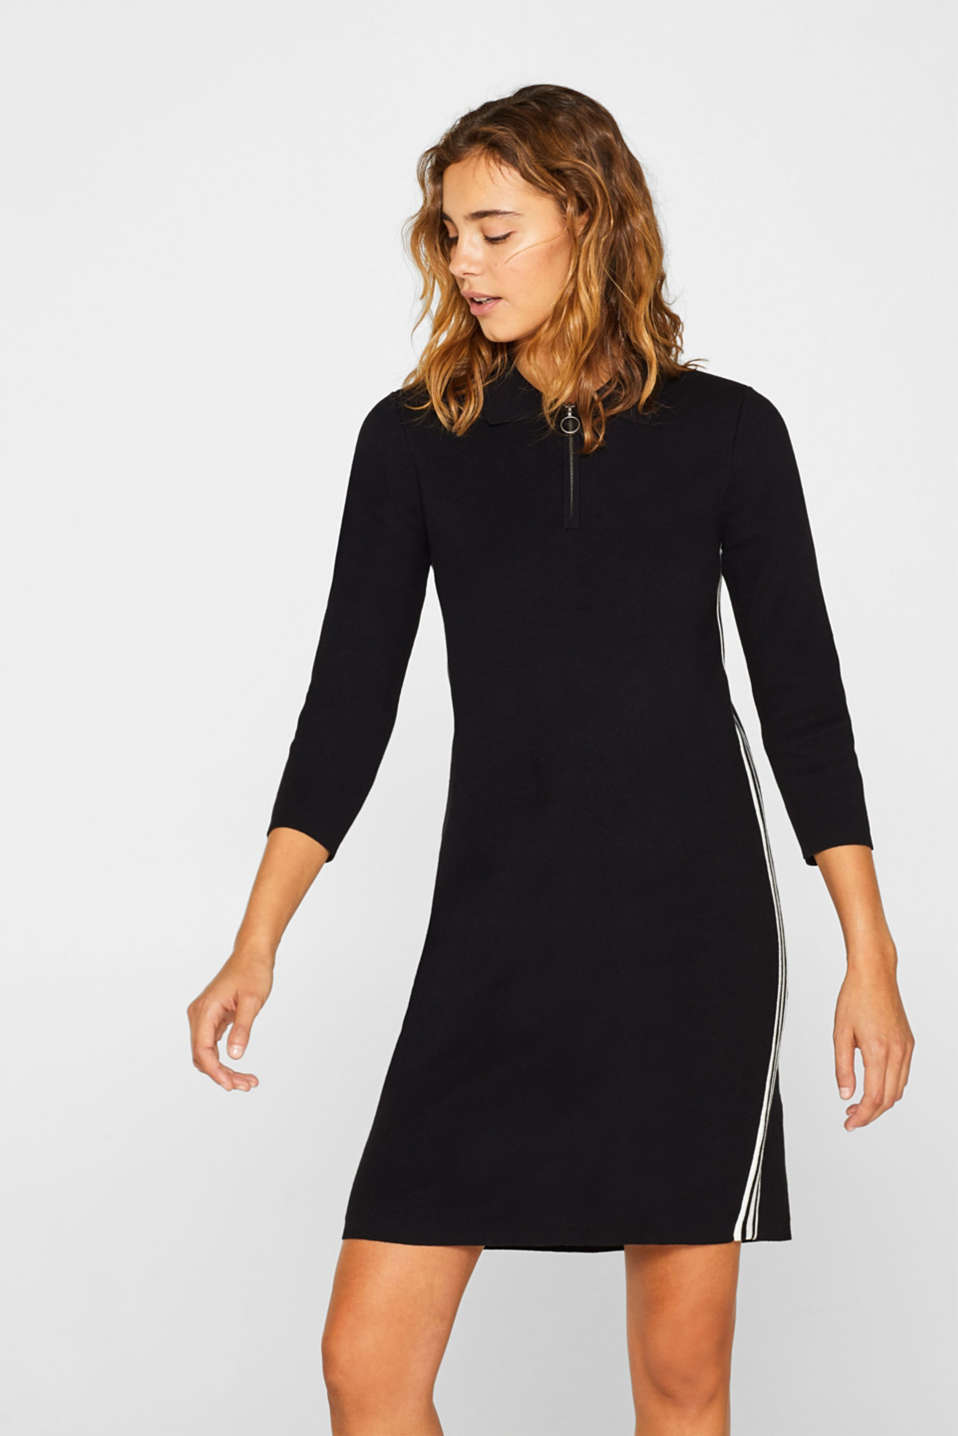 Polo knit dress with racing stripes, BLACK 2, detail image number 0